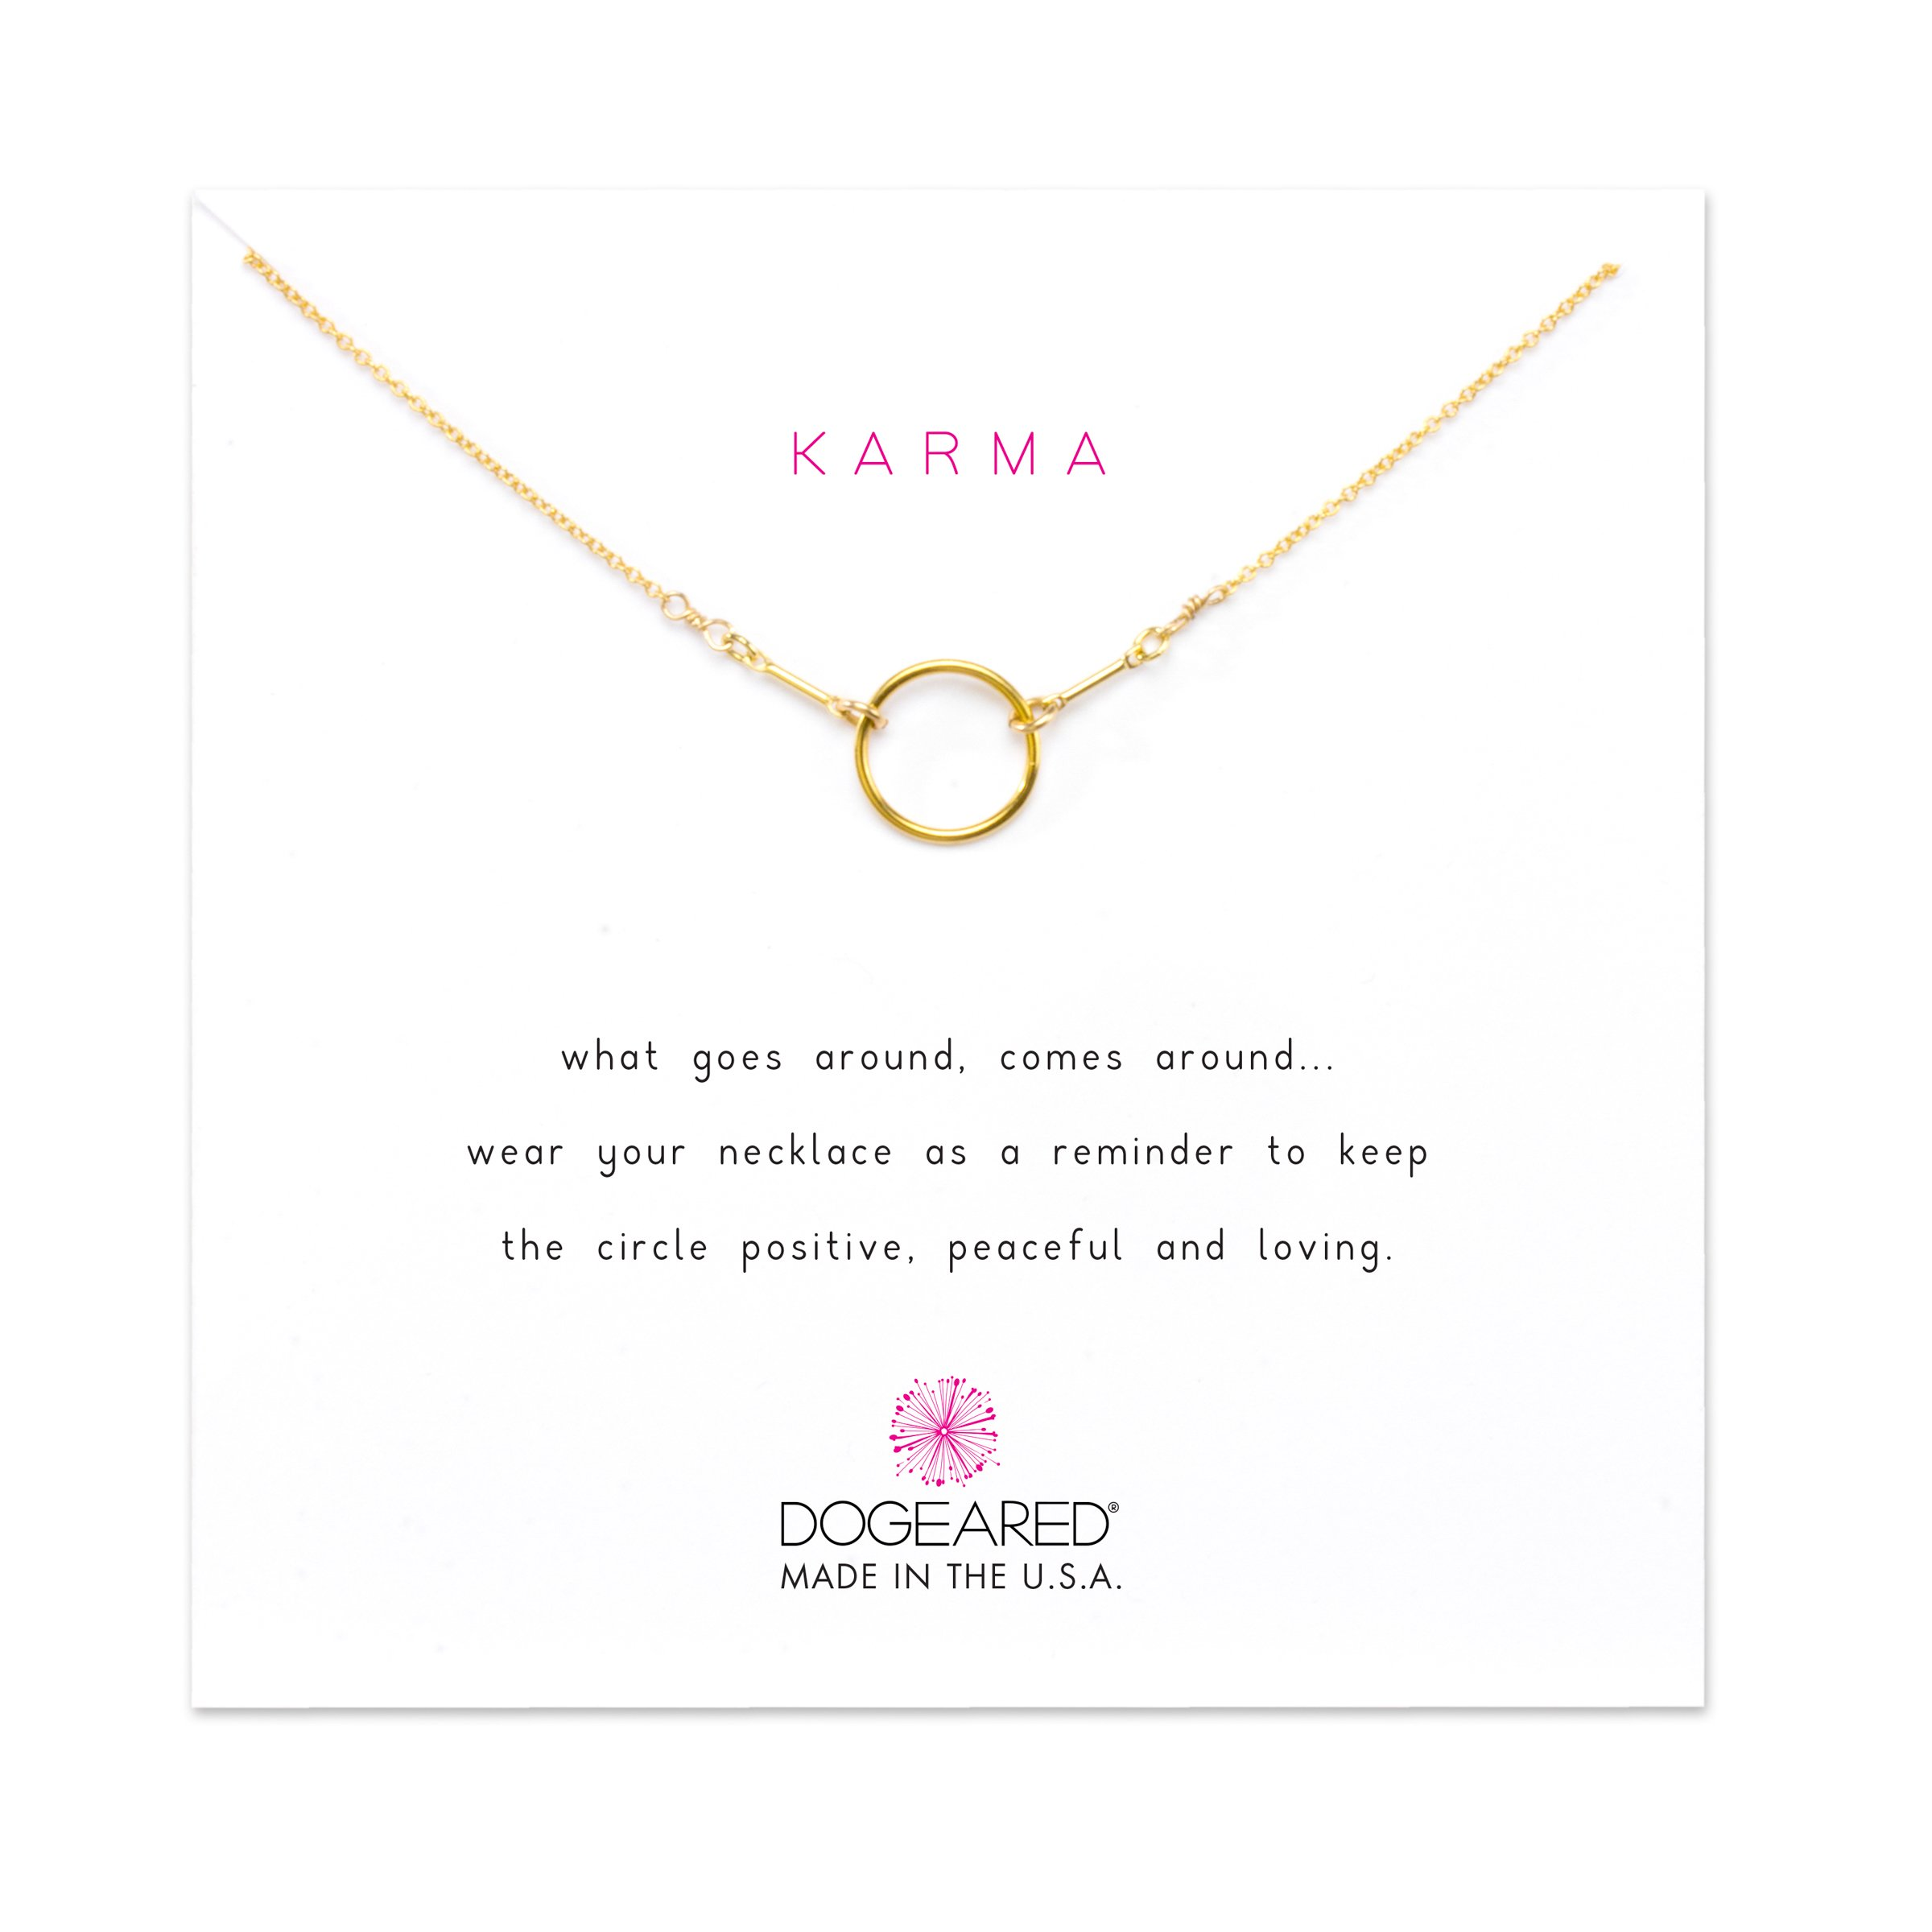 Dogeared Gold Dipped Original Classic Karma 16'' with 2'' Extender Necklace